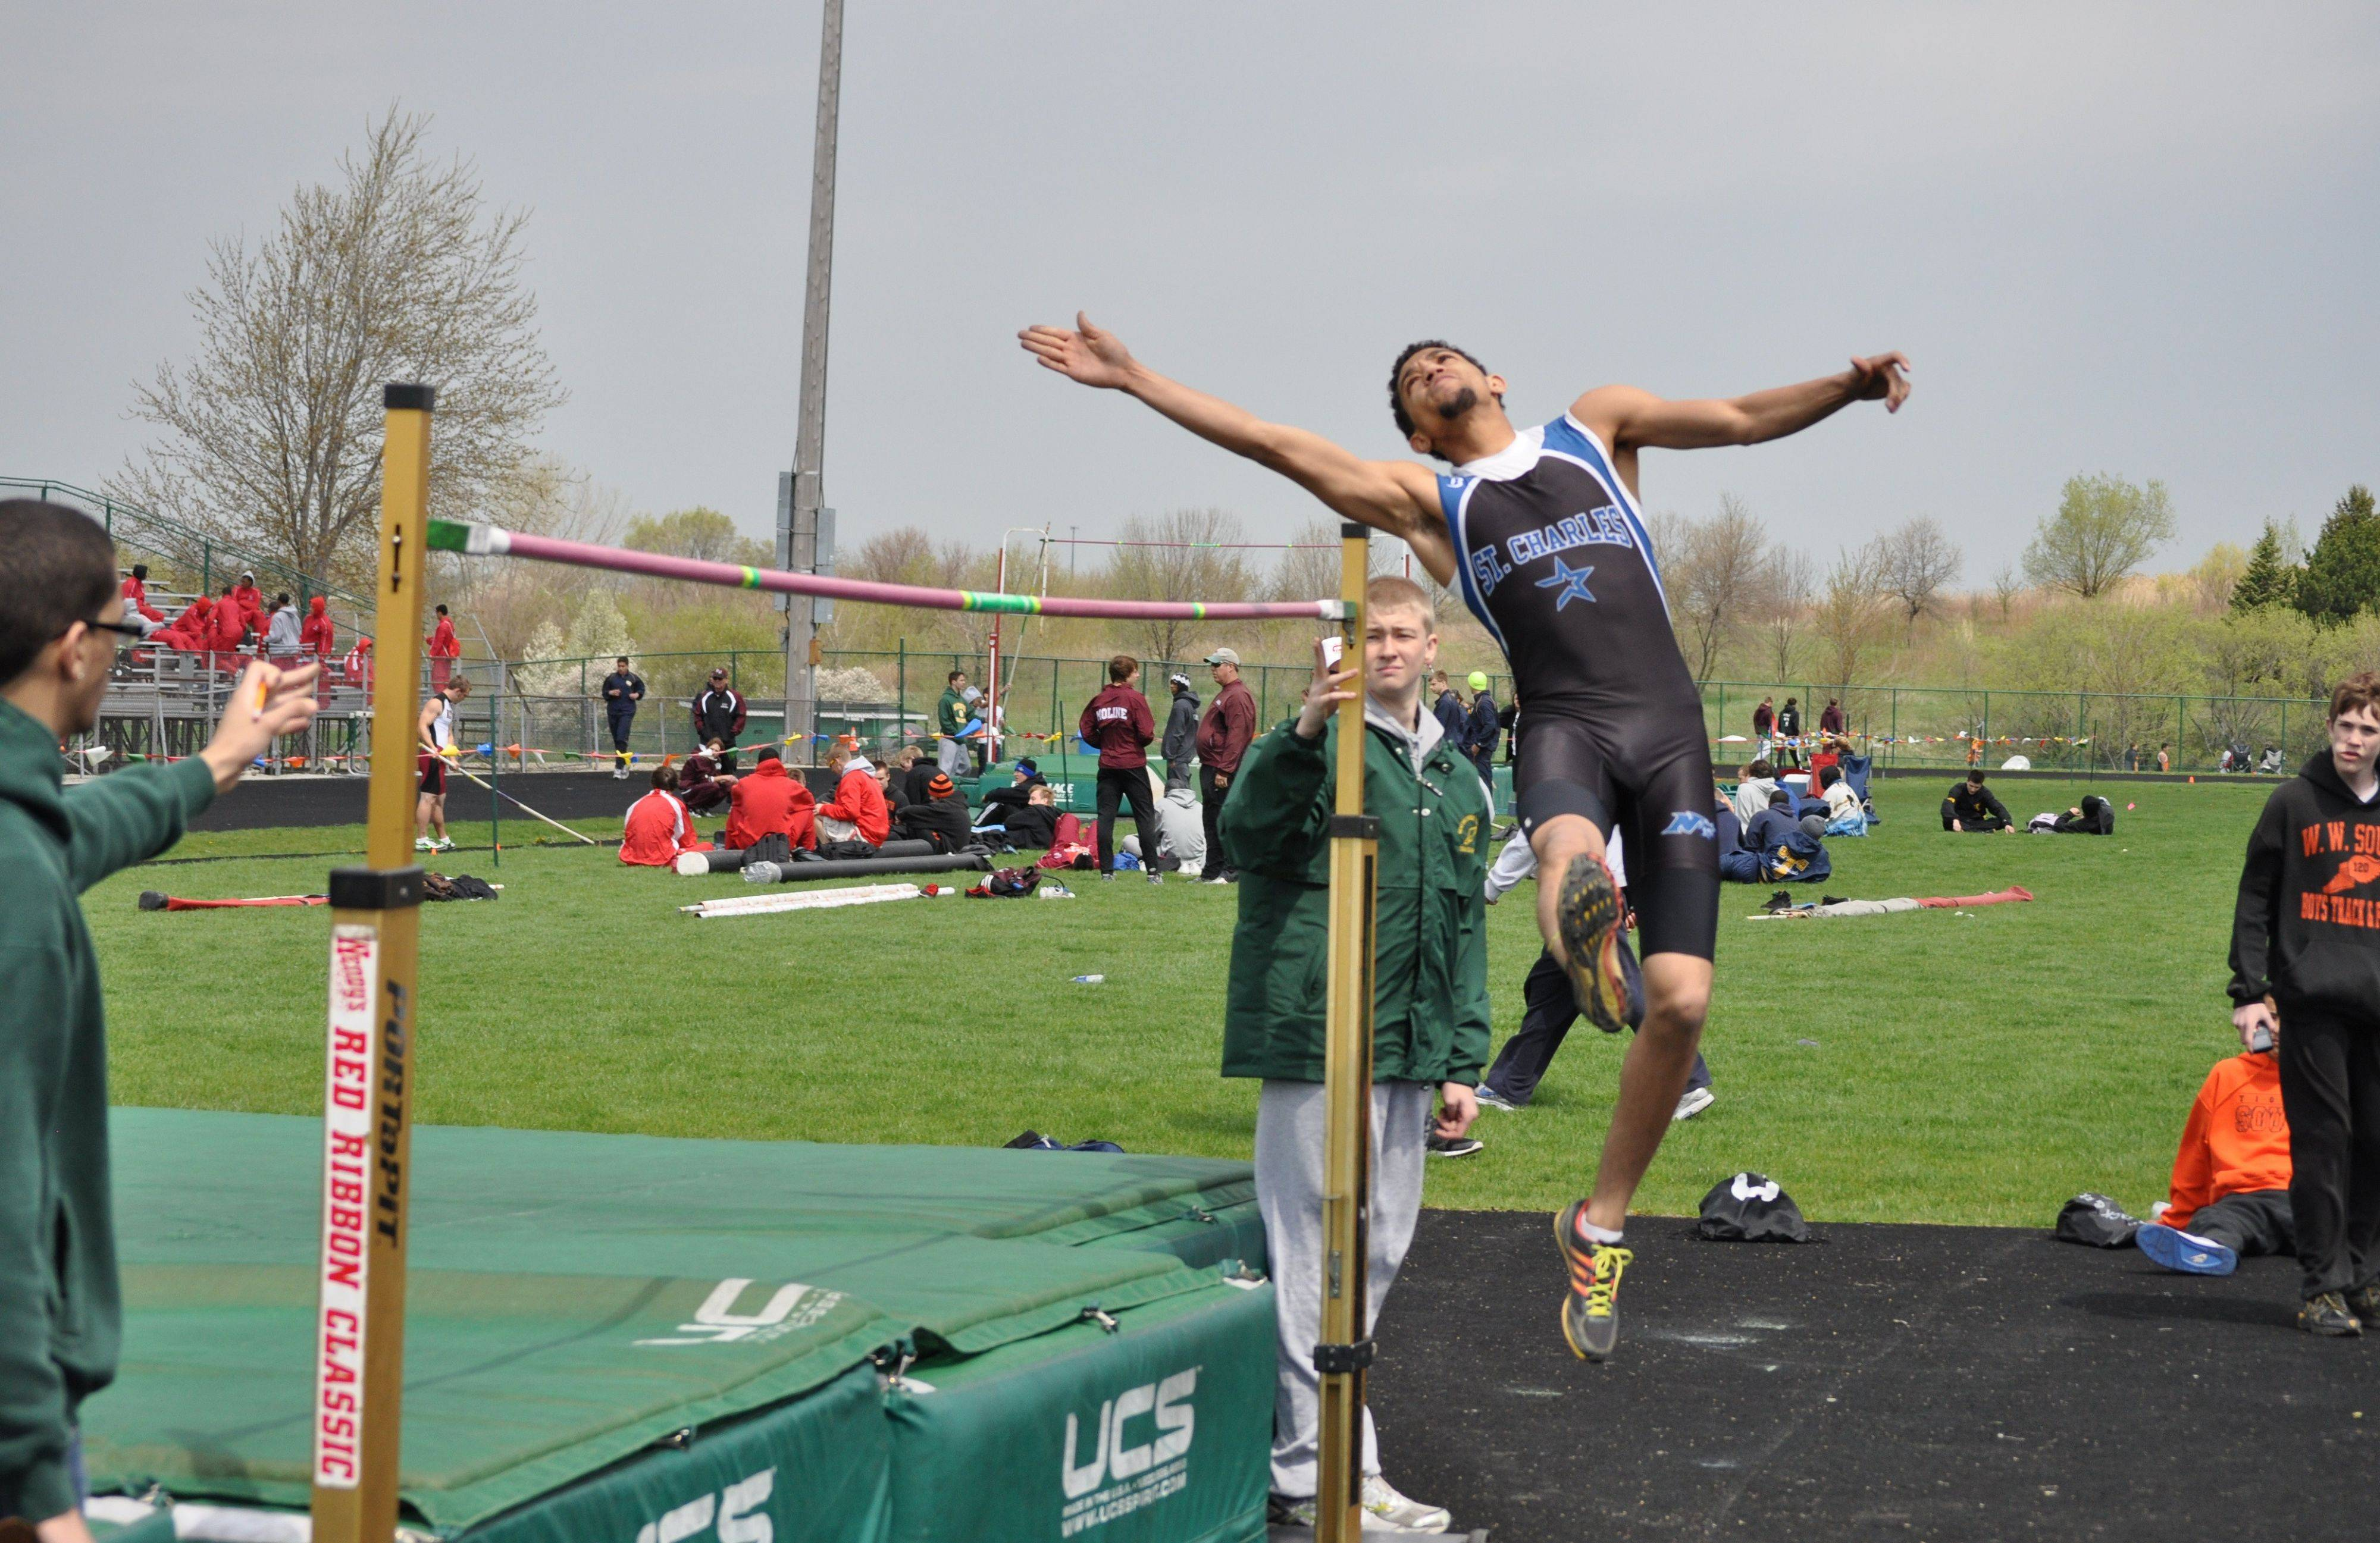 St. Charles North senior Oshay Hodges spent his summer excelling in high jump competitions, which he hopes will help him this fall as a North Star wide receiver.